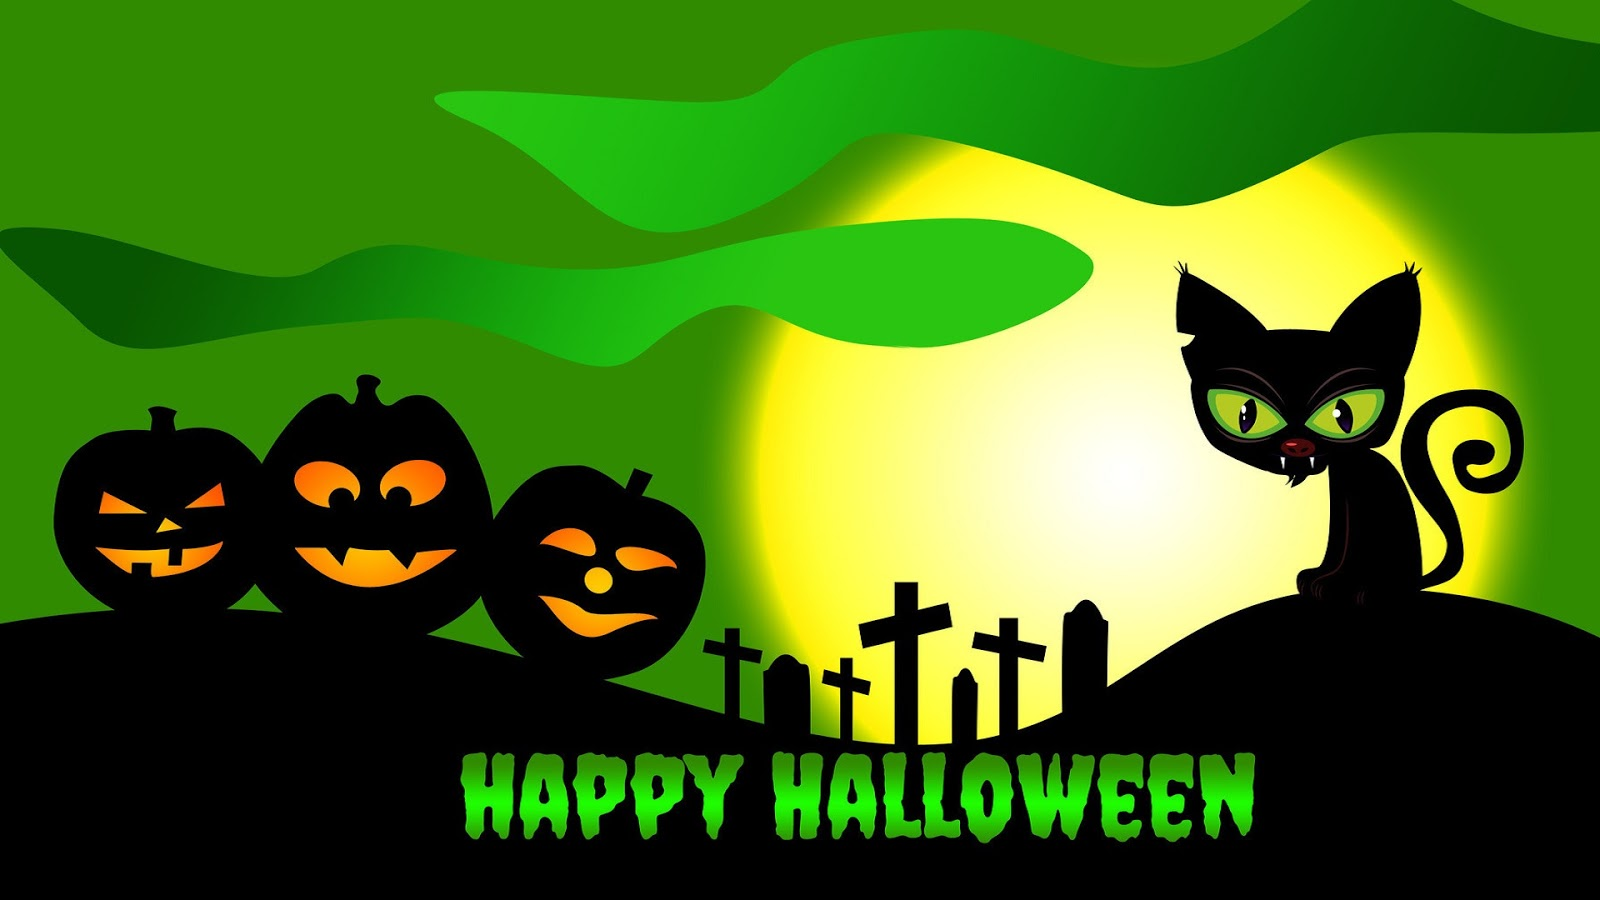 hd wallpapers of happy halloween day halloween day hd wallpapers 2016 - Halloween Which Day